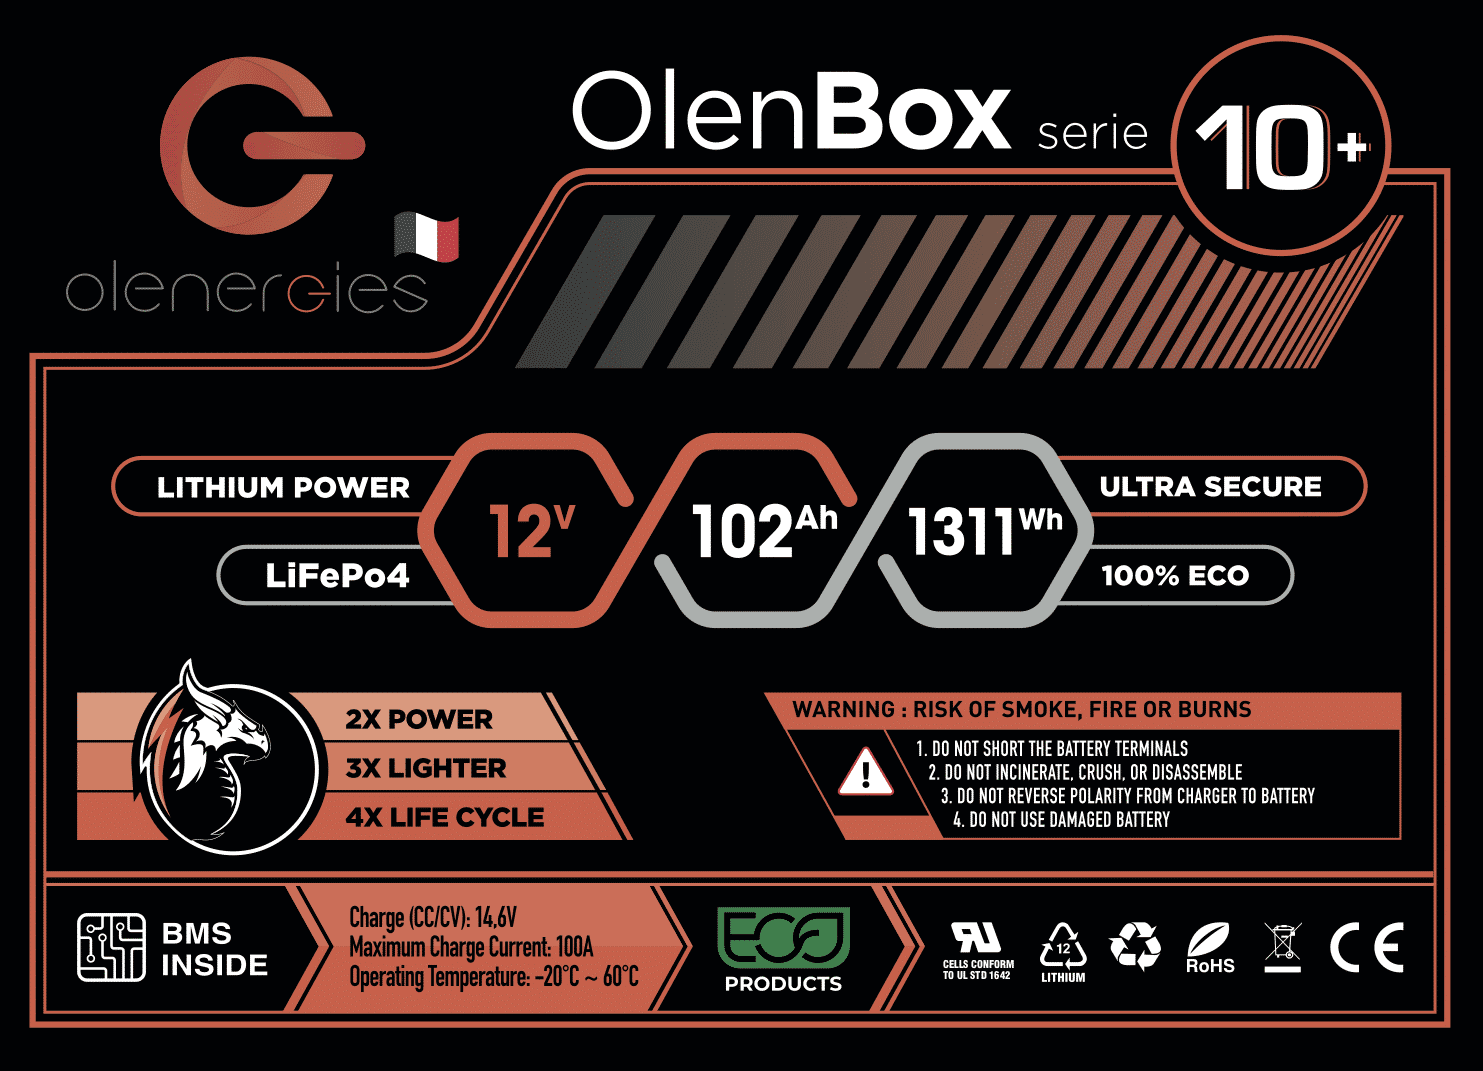 certifications batteries lithium UN38-3 transport, Certifications, Olenergies - Batteries de stockage lithium LFP - French lithium battery manufacturer, Olenergies - Batteries de stockage lithium LFP - French lithium battery manufacturer